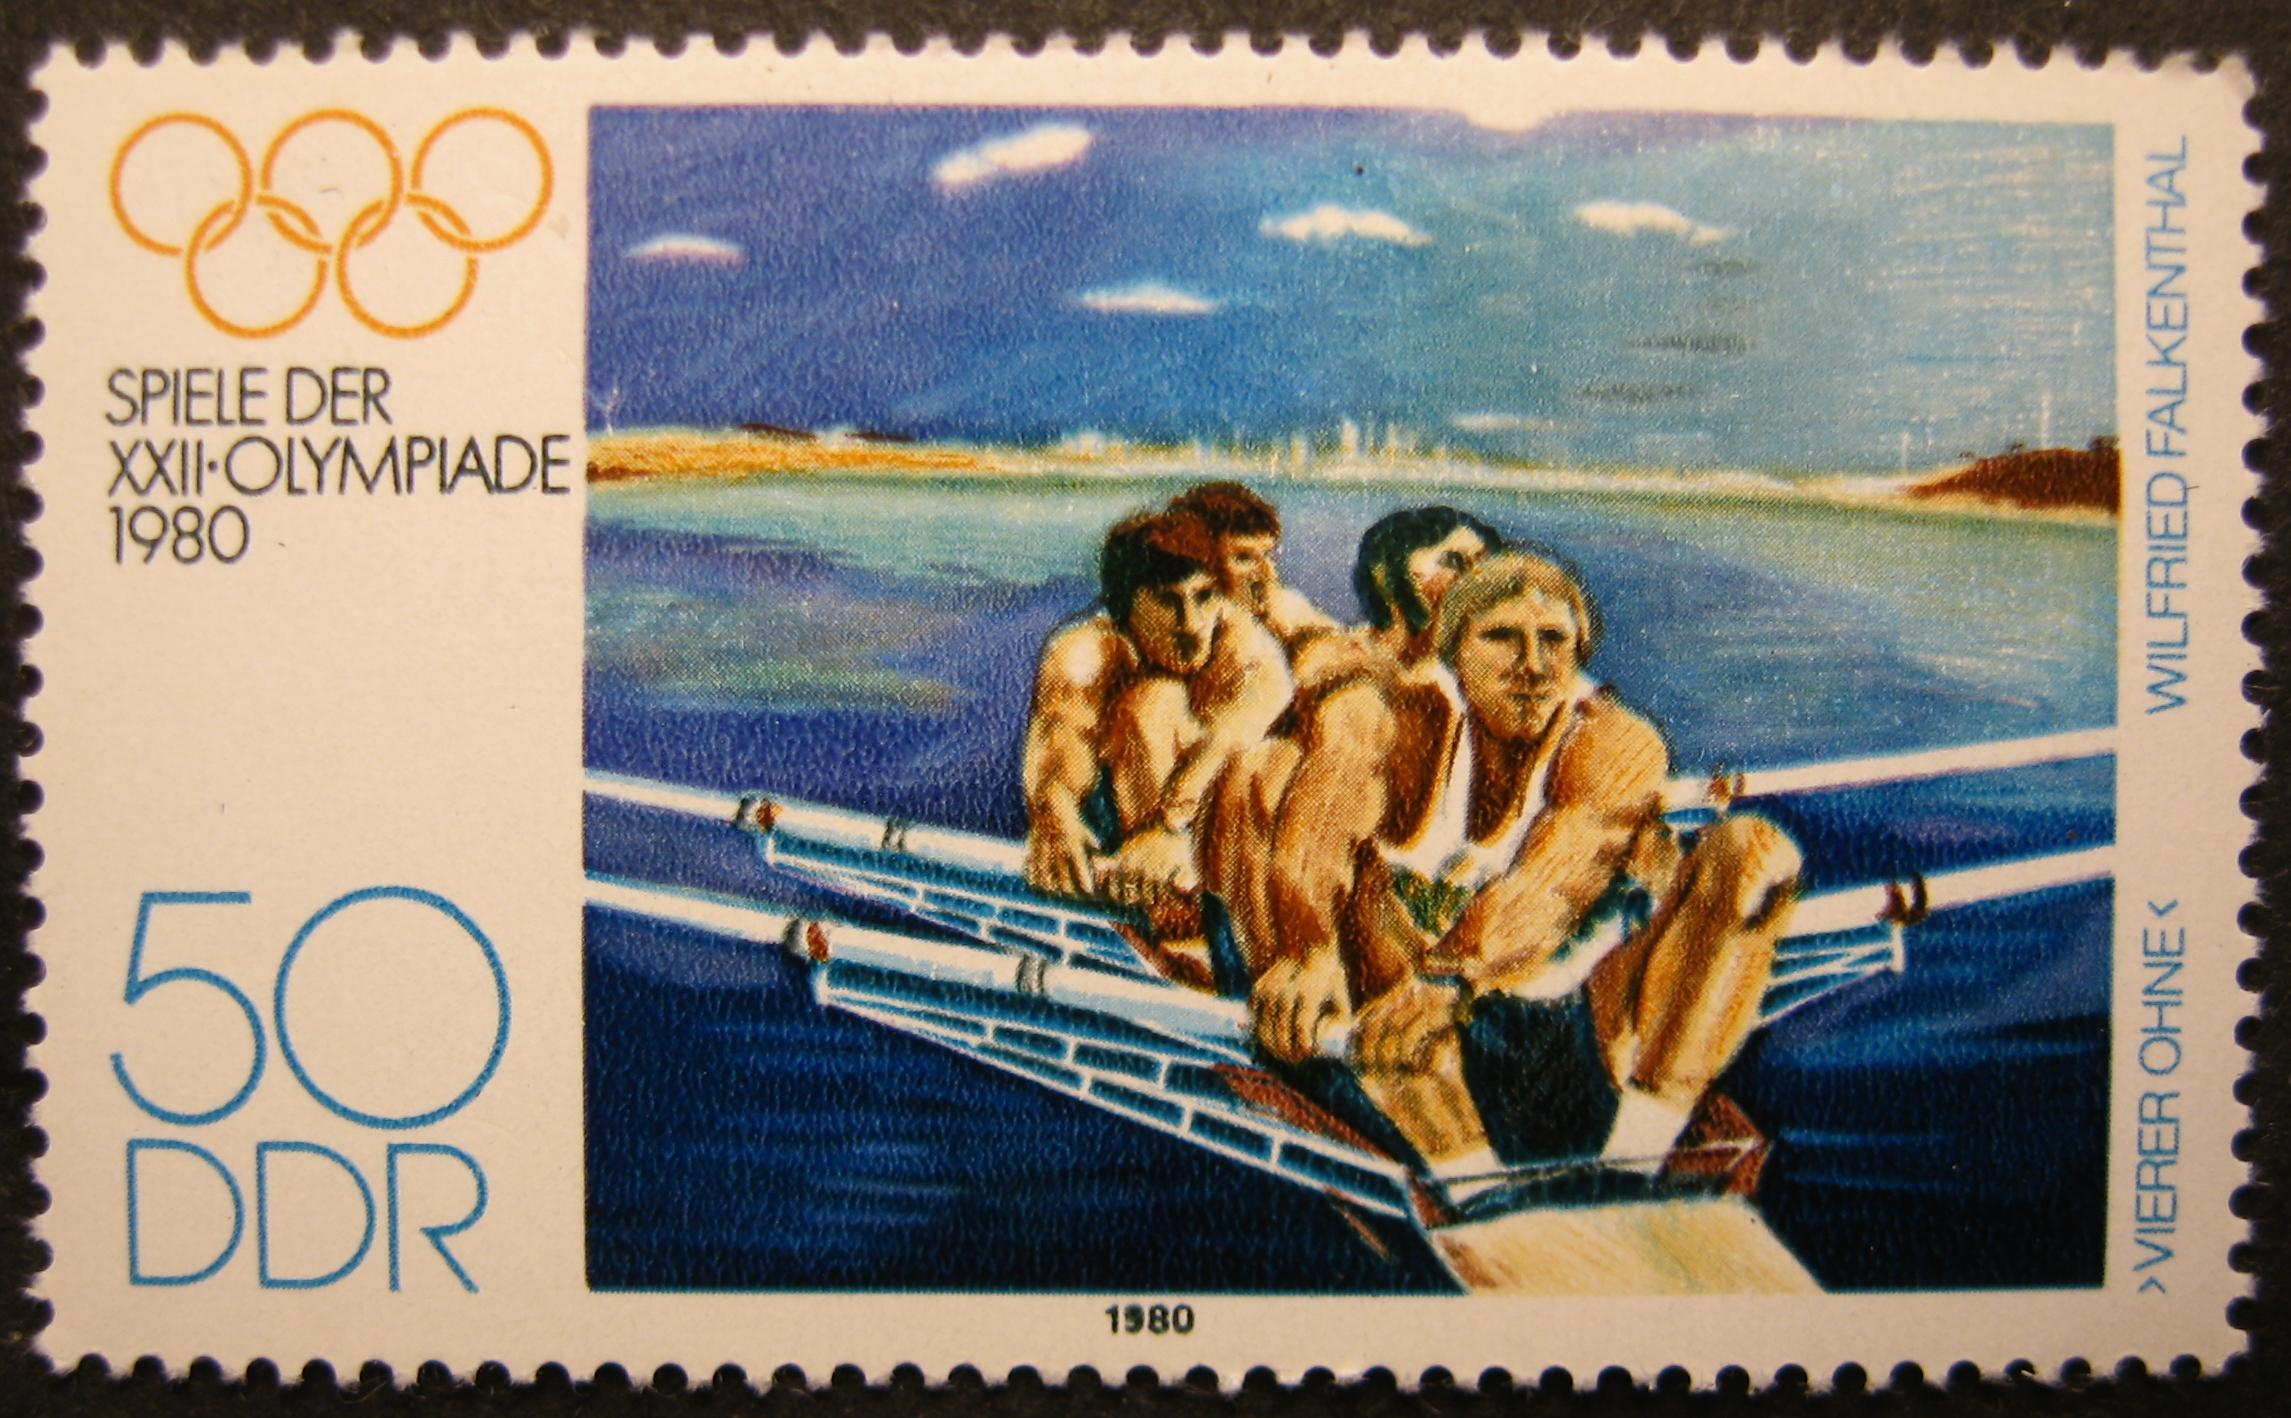 English: Rowing Olympic Games